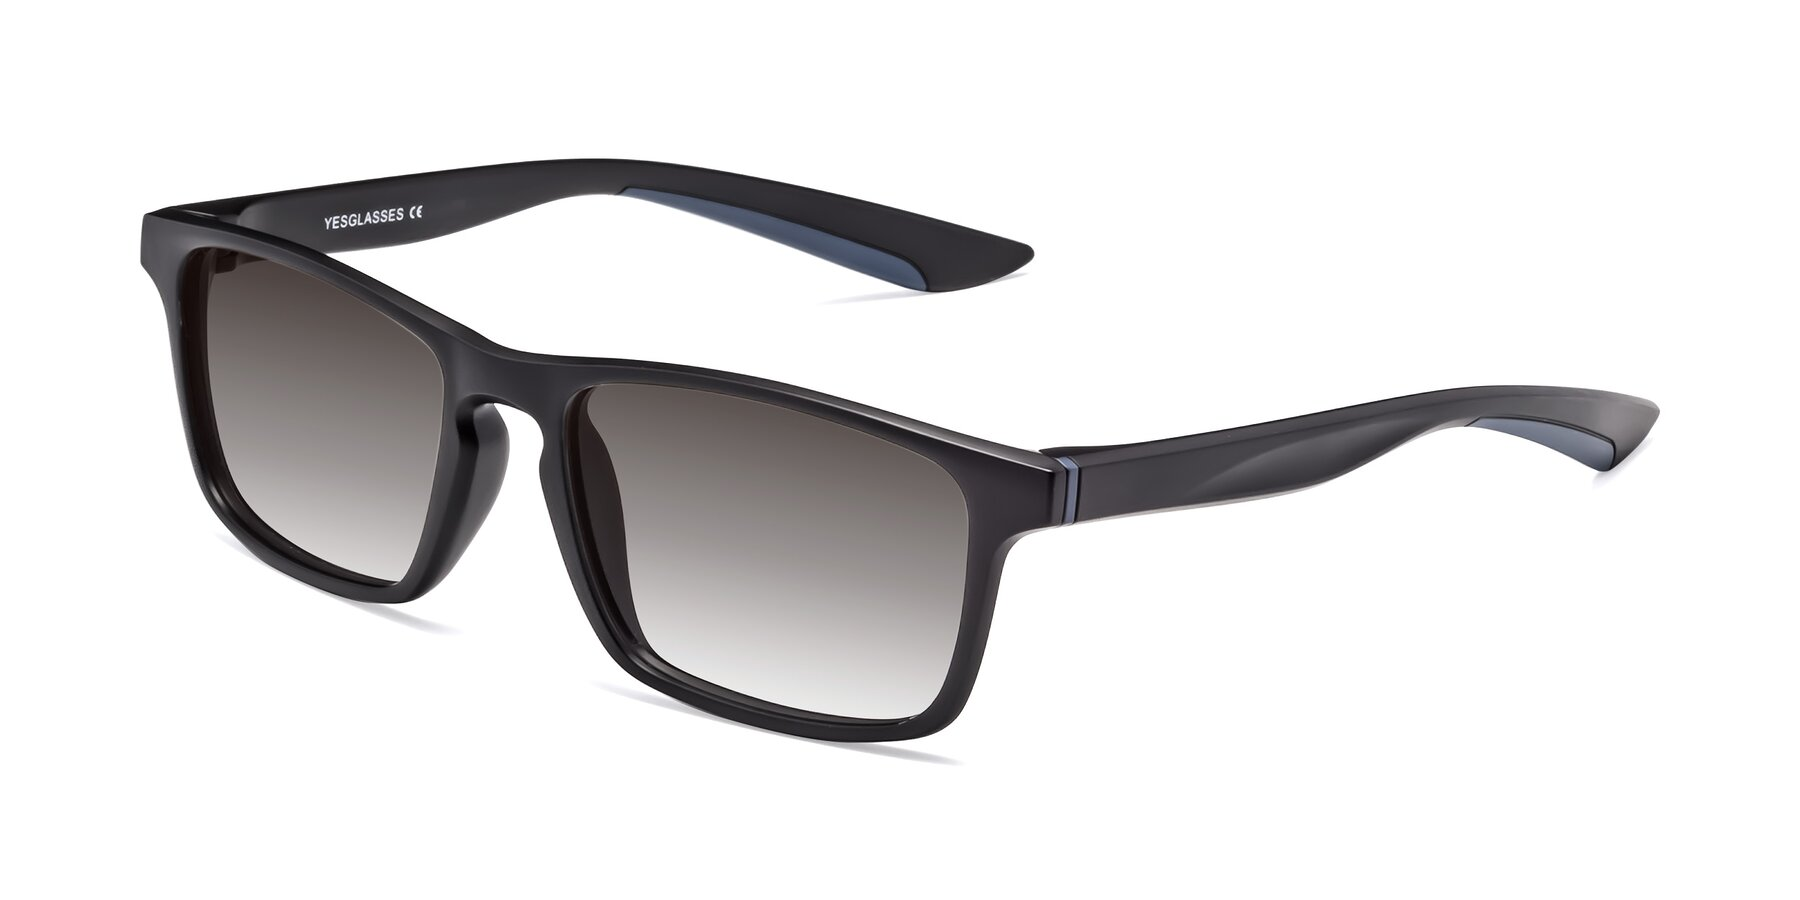 Angle of Passion in Matte Black-Blue with Gray Gradient Lenses